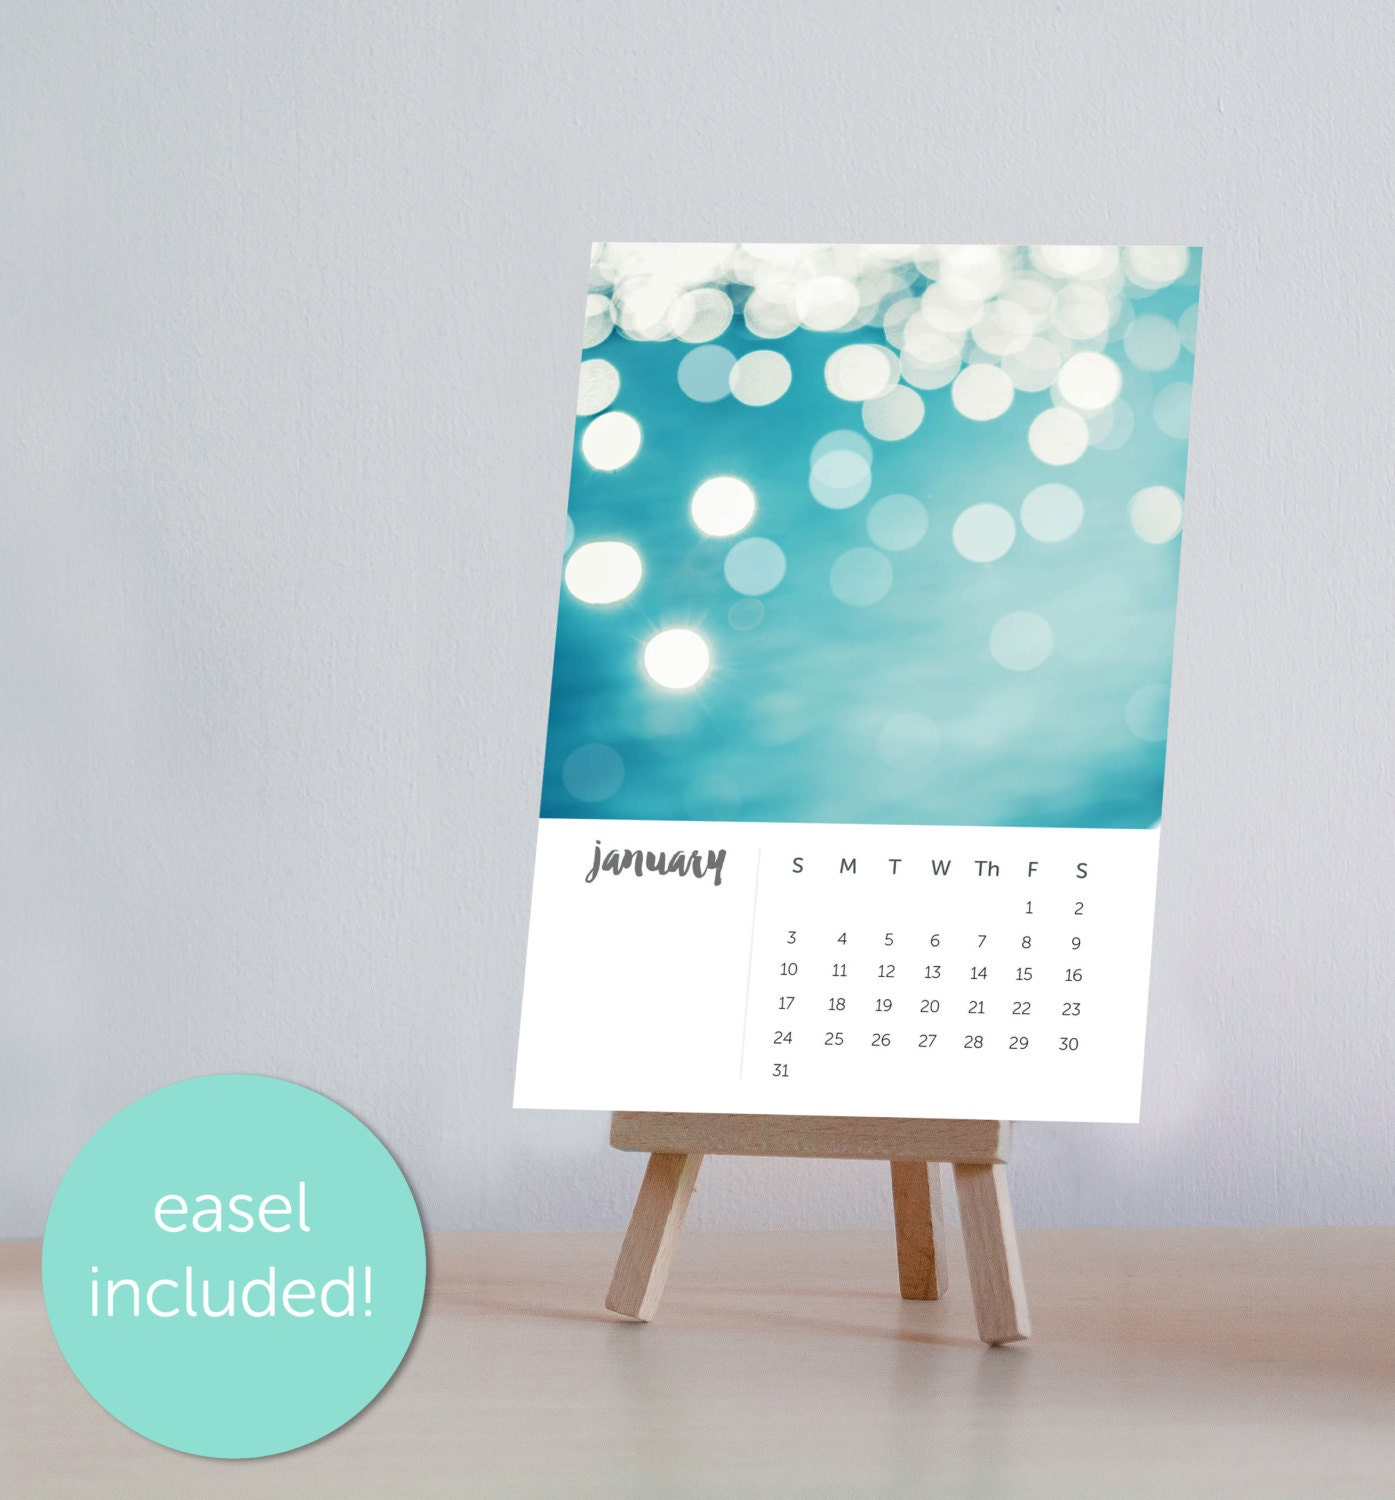 Handmade Table Calendar Designs : Calendar desk with stand photography